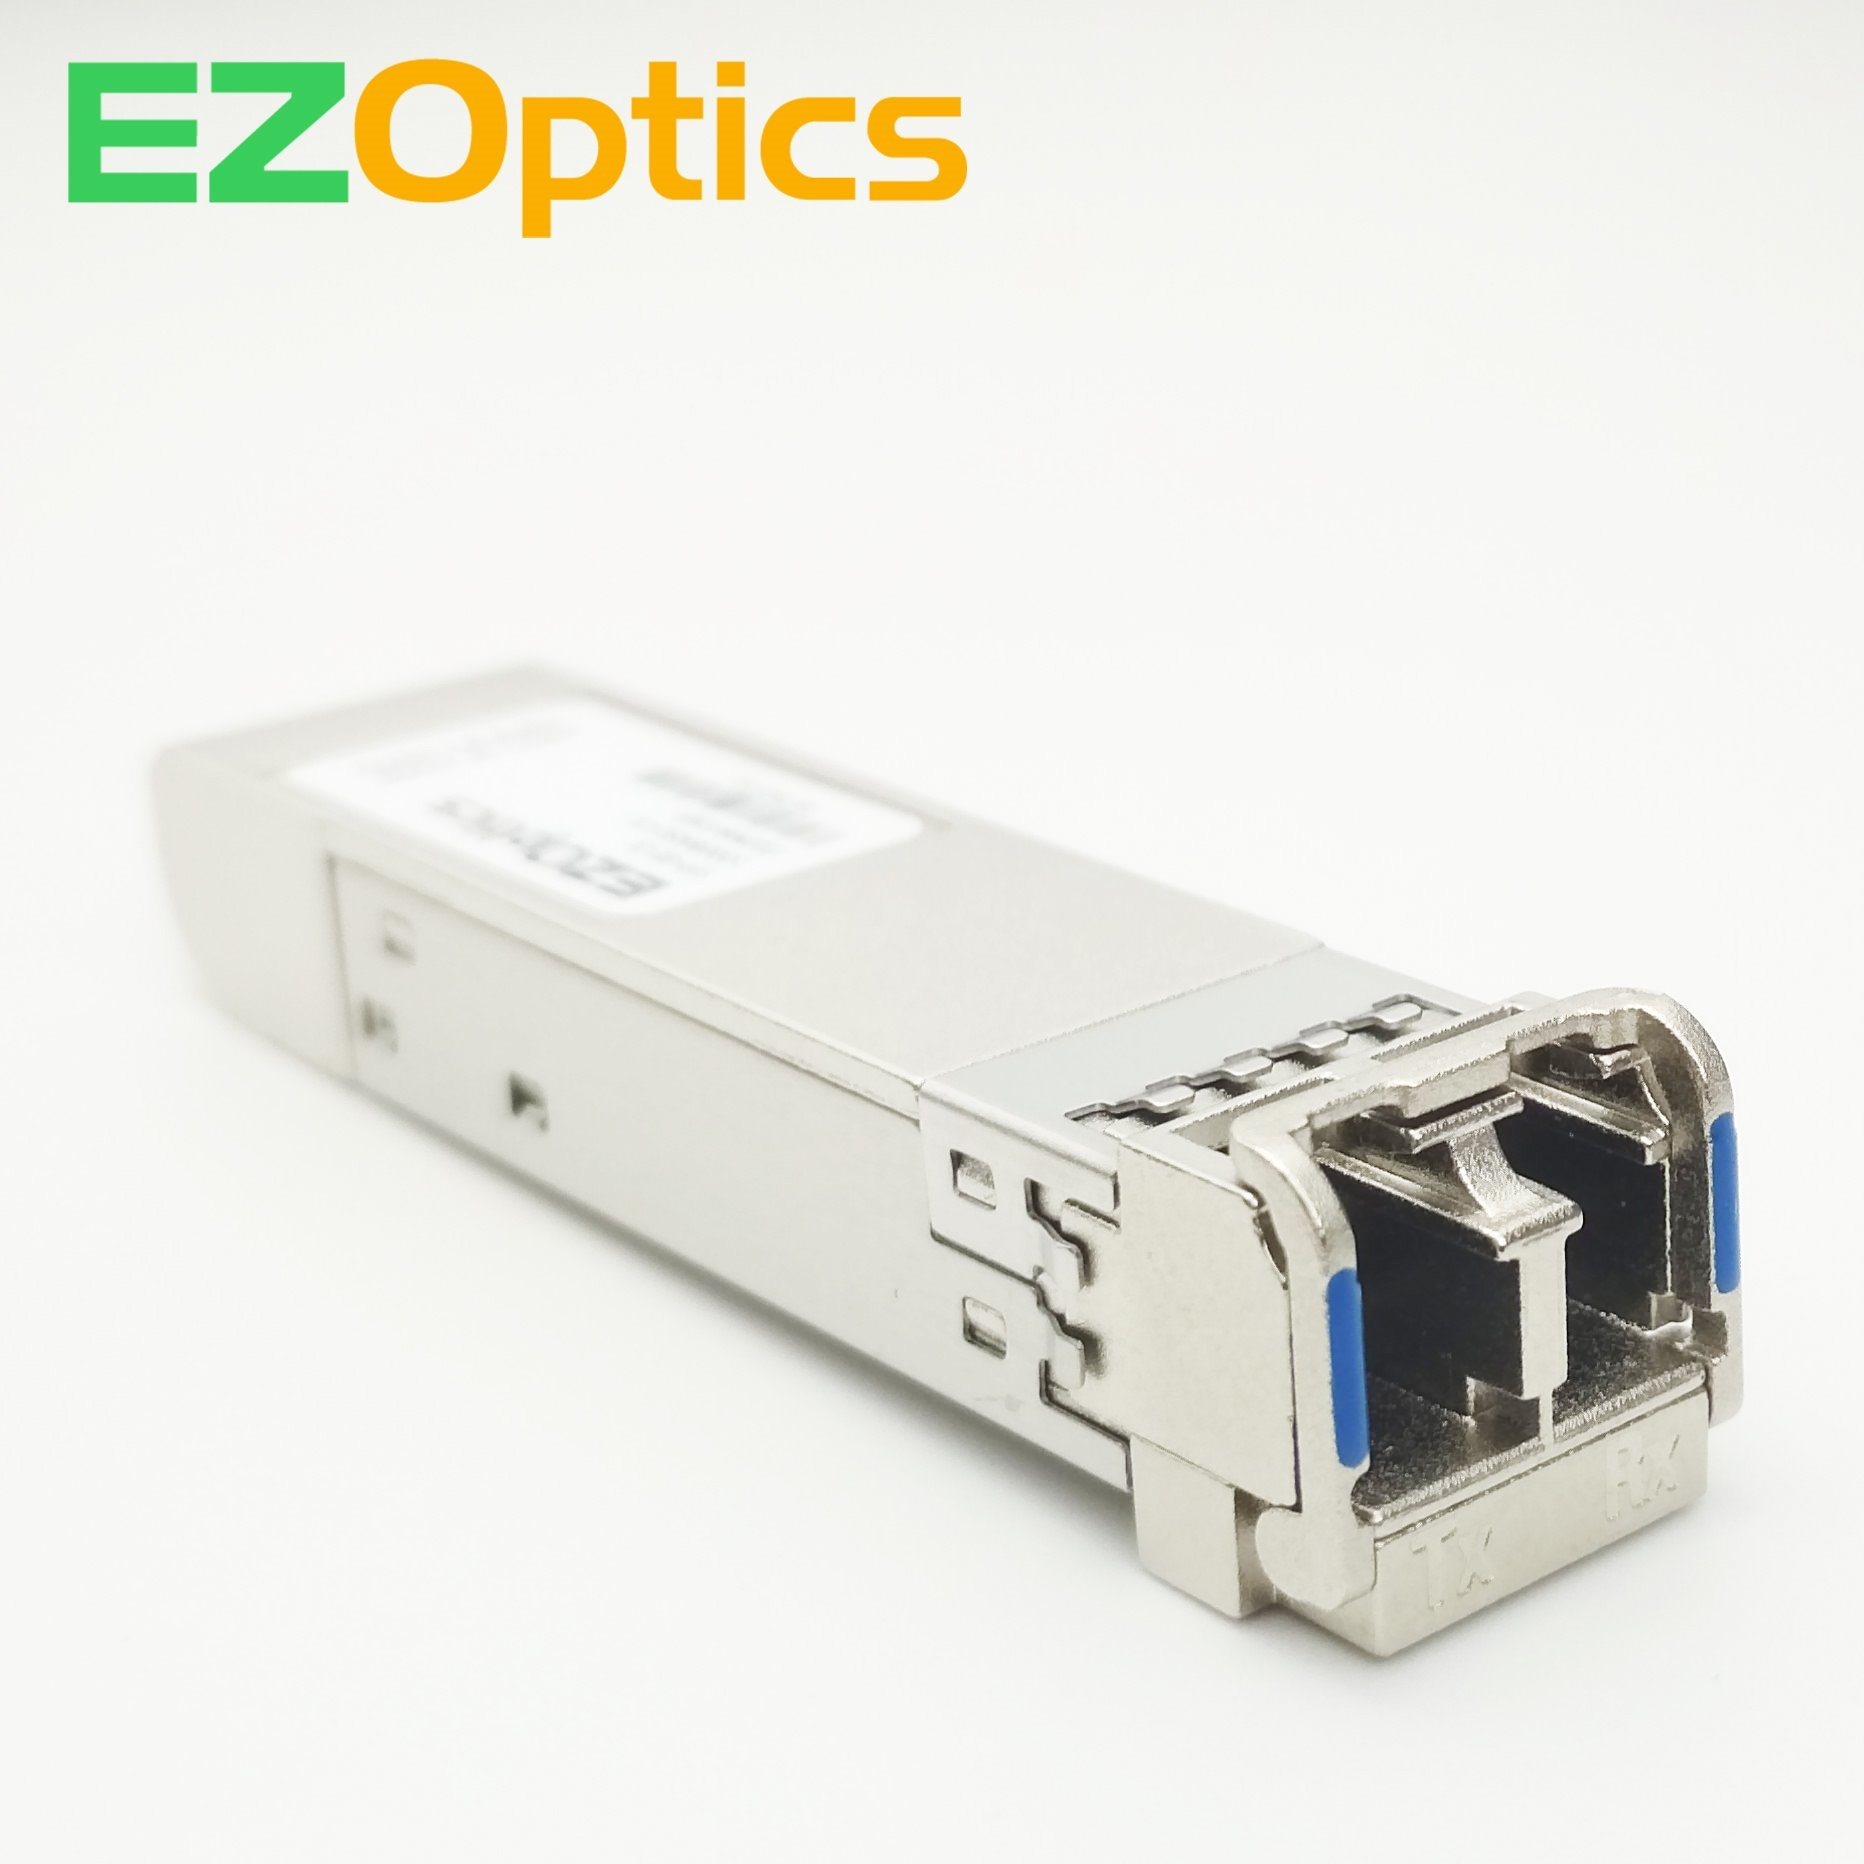 SFP-10GB-LR Compatible Cisco 10GBASE-LR SFP 1310nm 10km DOM Transceiver Module